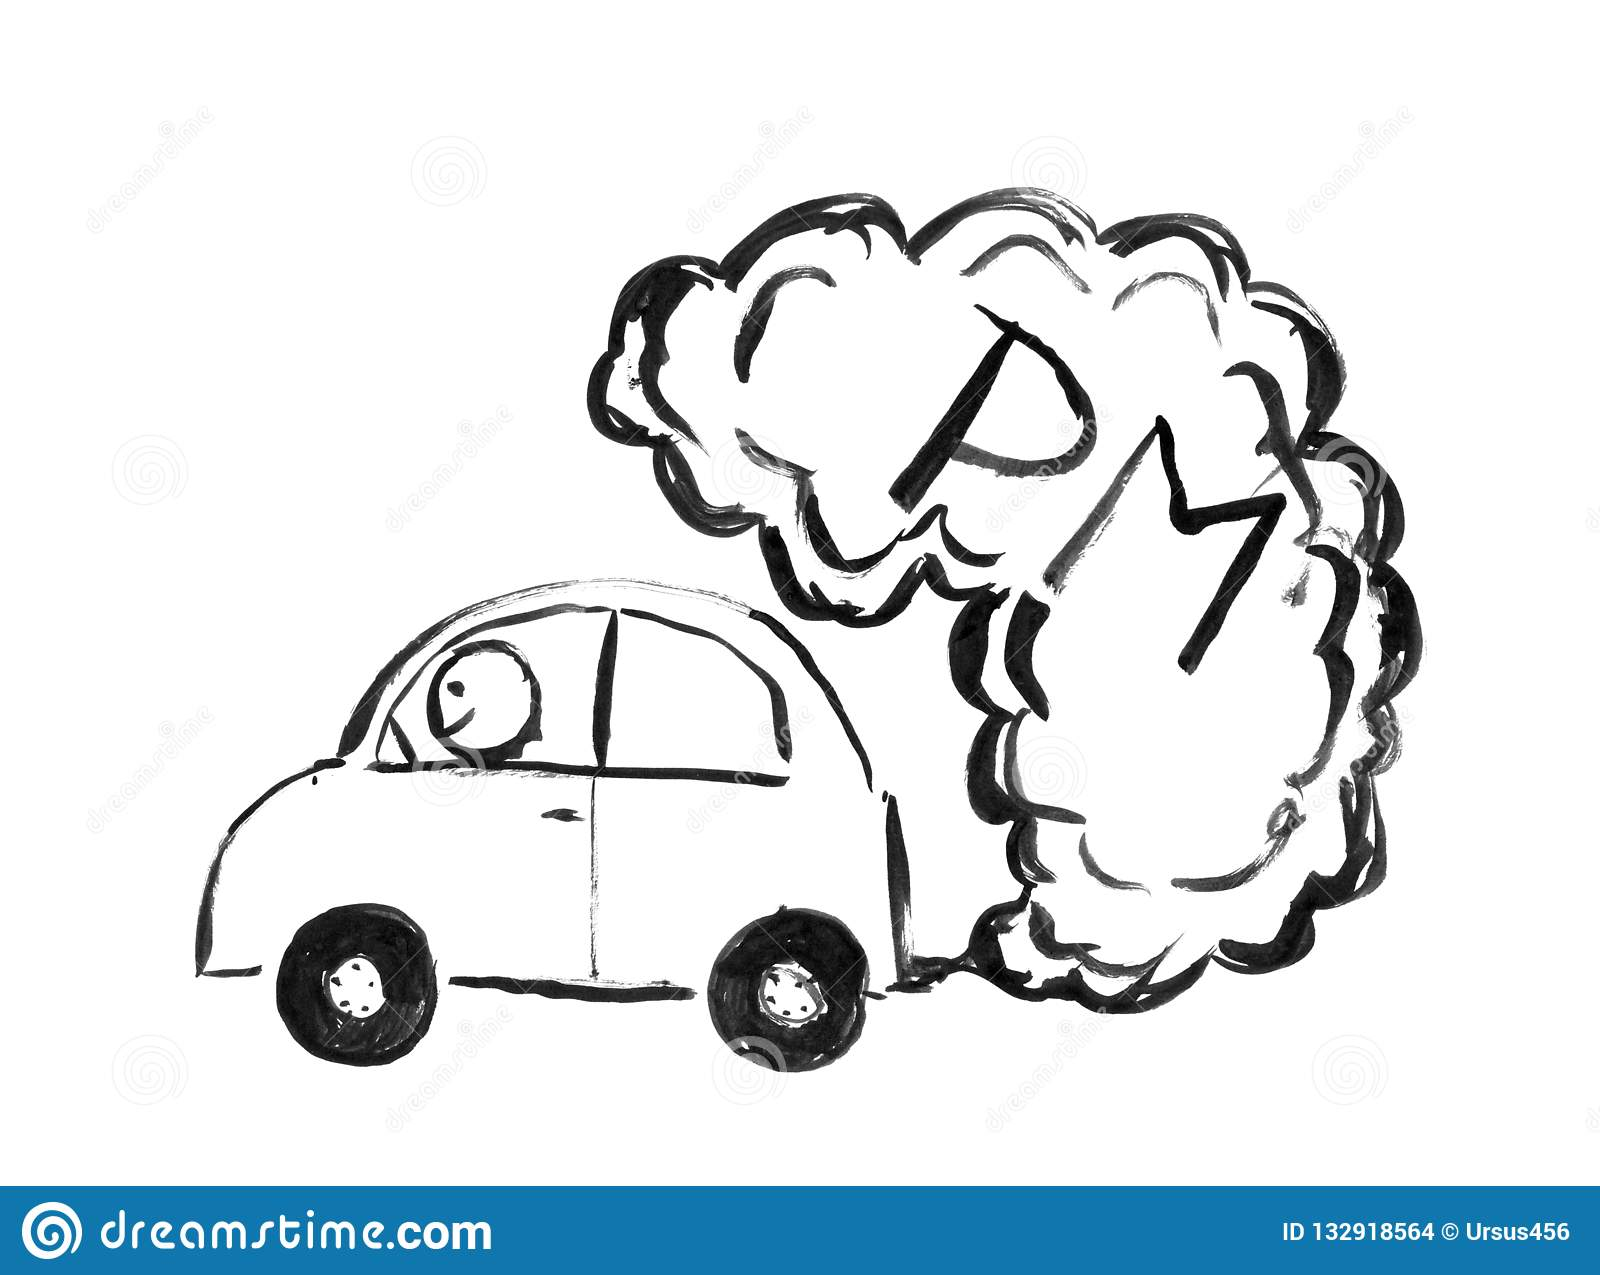 Black Ink Hand Drawing Of Car Producing Pm Air Pollution